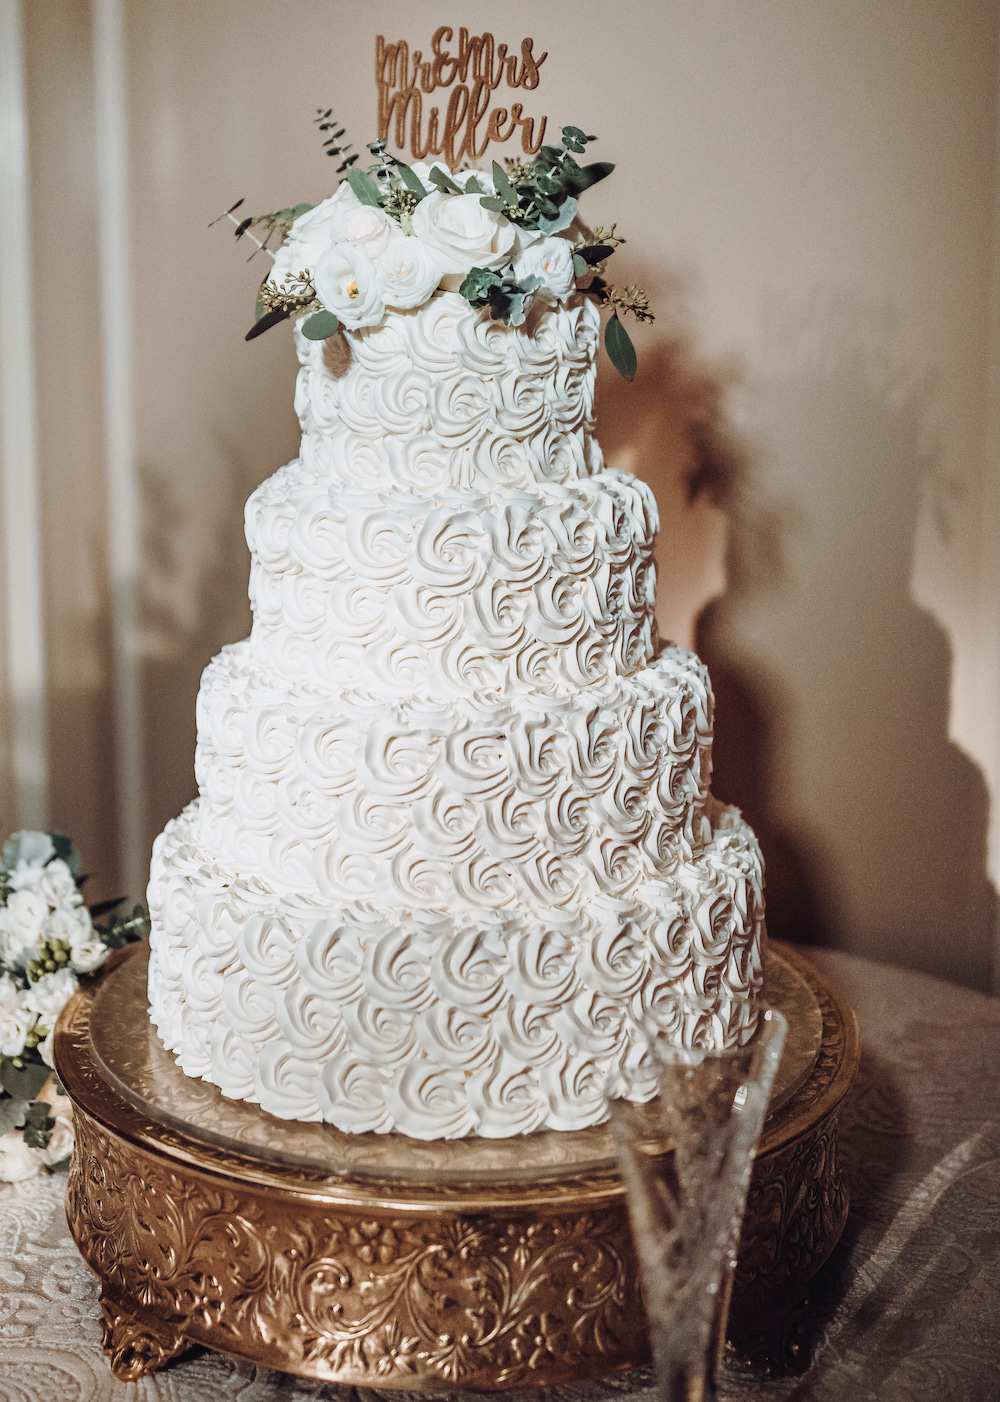 """Four tiered white wedding cake by Susie's Cakes with small rose inspired swirls in icing, topped with white roses, eucalyptus and gold lettering which reads, """"Mr. and Mrs. Miller"""""""